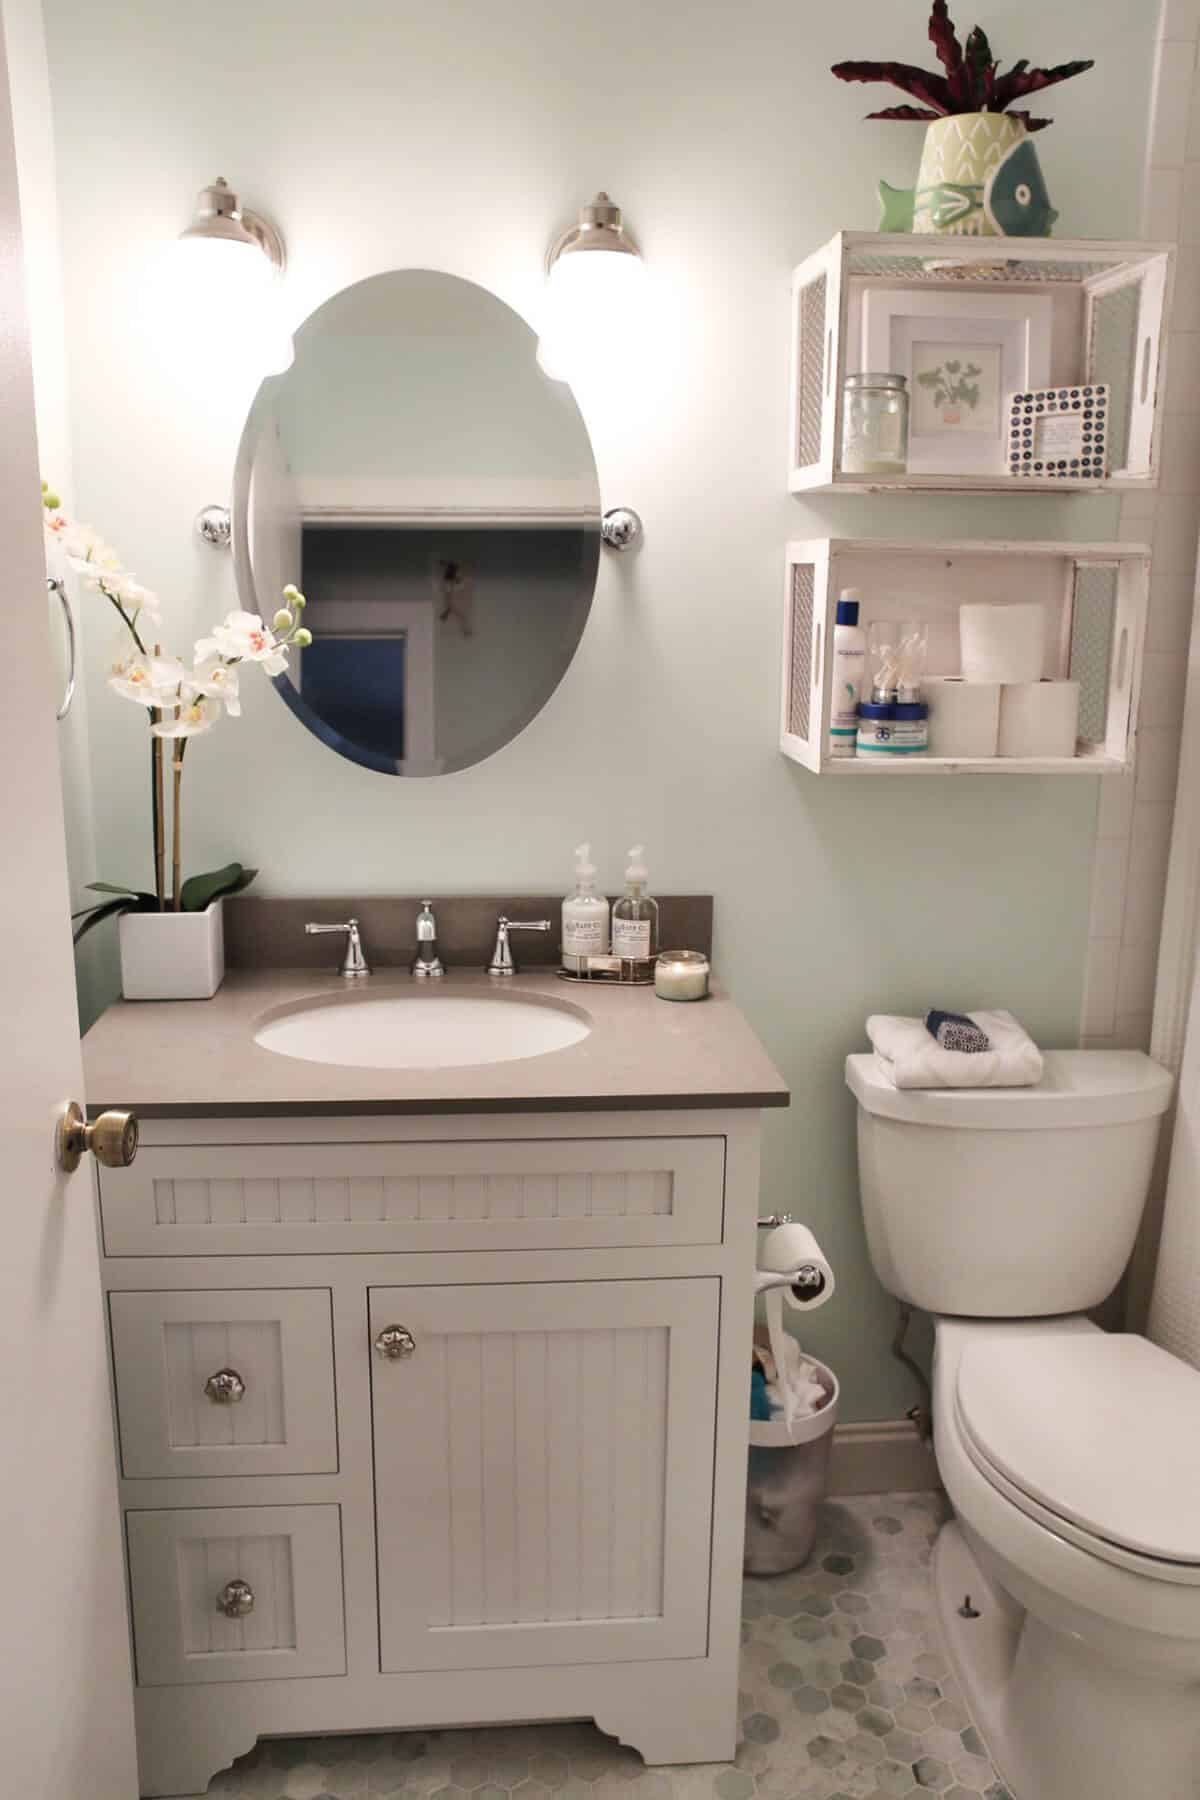 bathroom trends 2021 top 14 new ideas to use in your interior